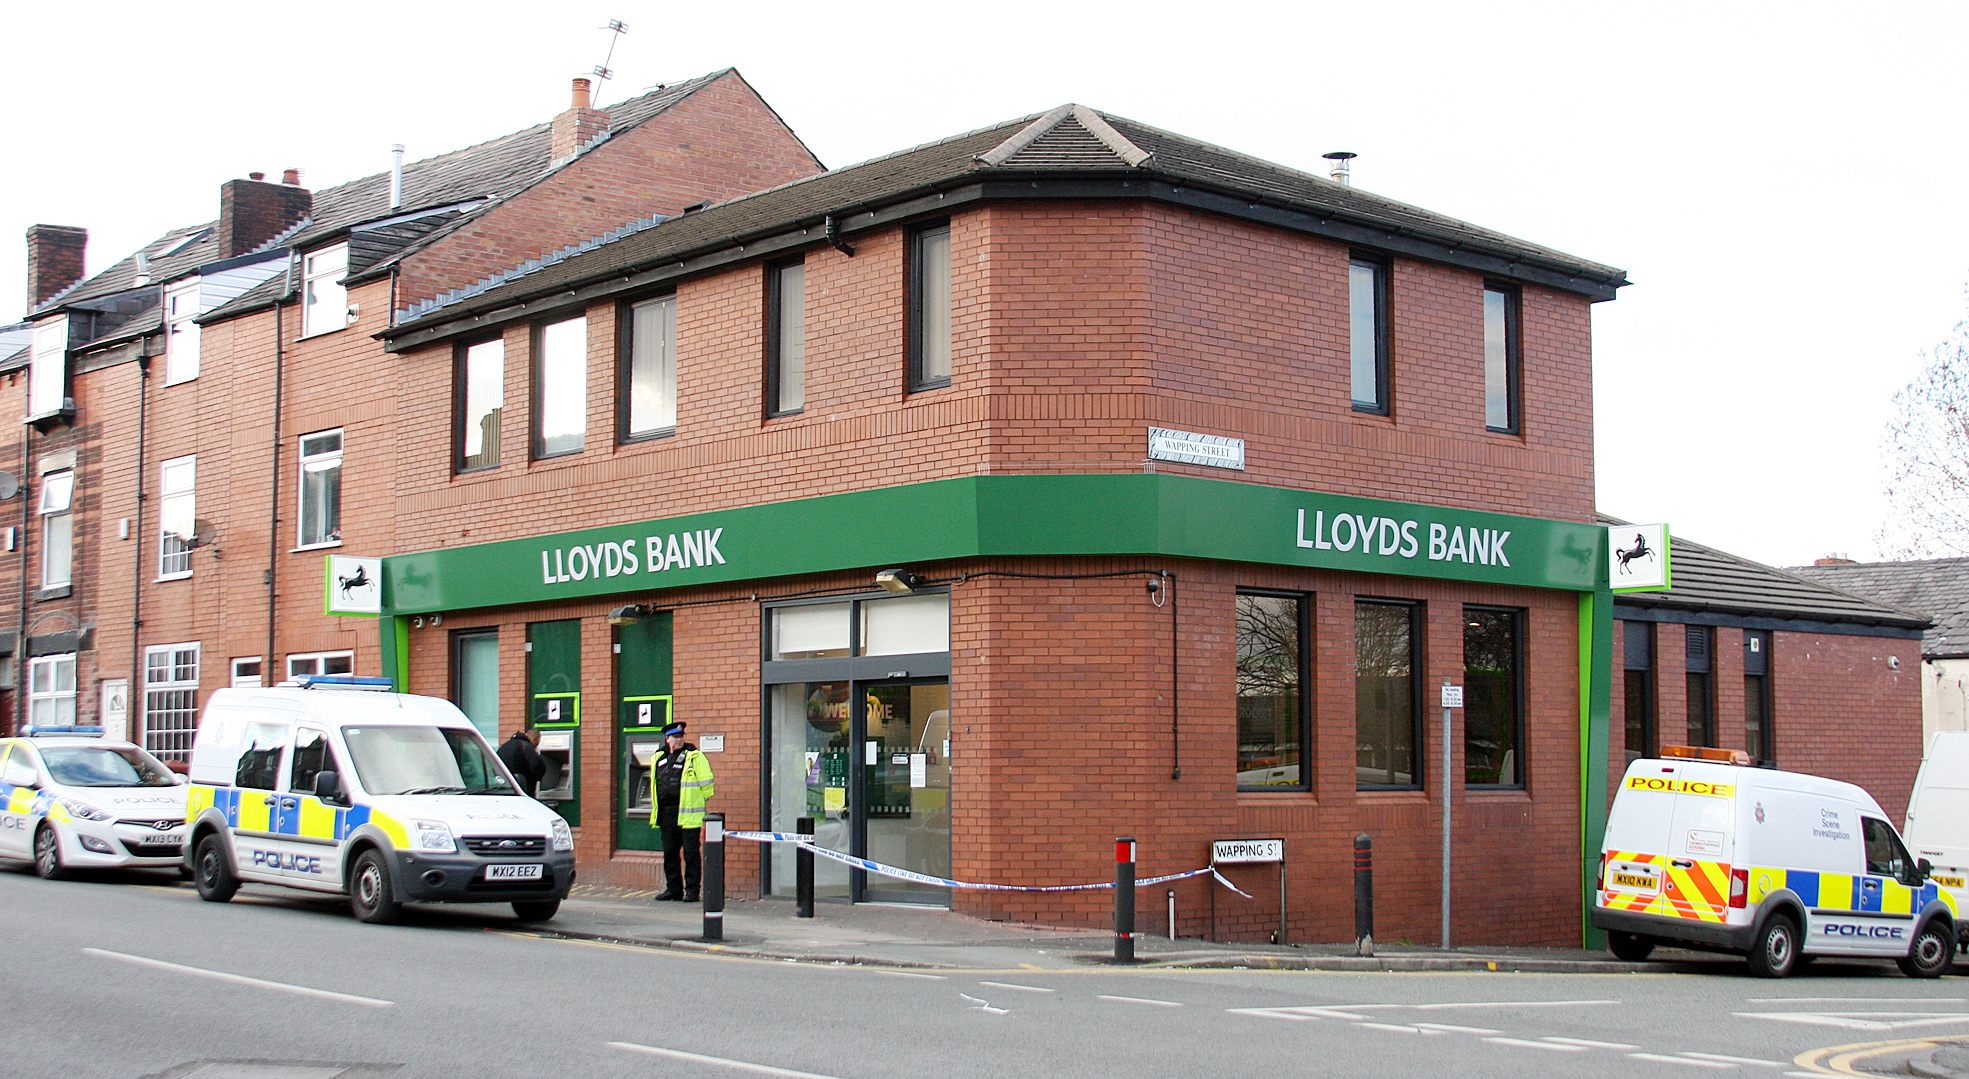 Scene of the attempted robbery at Lloyds Bank